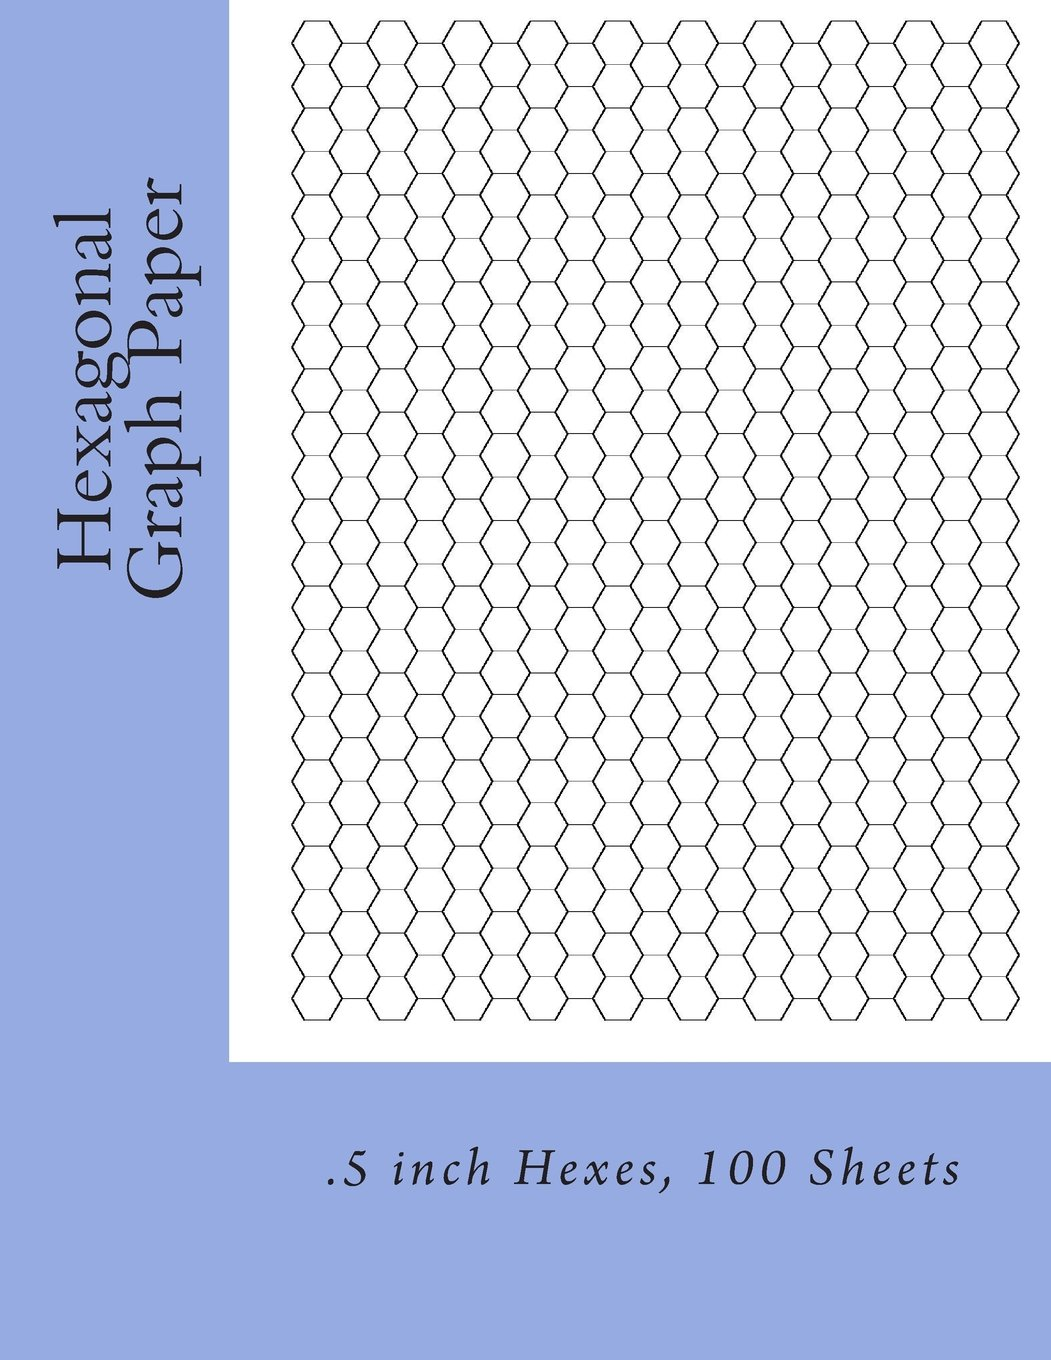 Hexagonal Graph Paper: .5 inch Hexes, 100 Sheets: Paul M Fleury ...